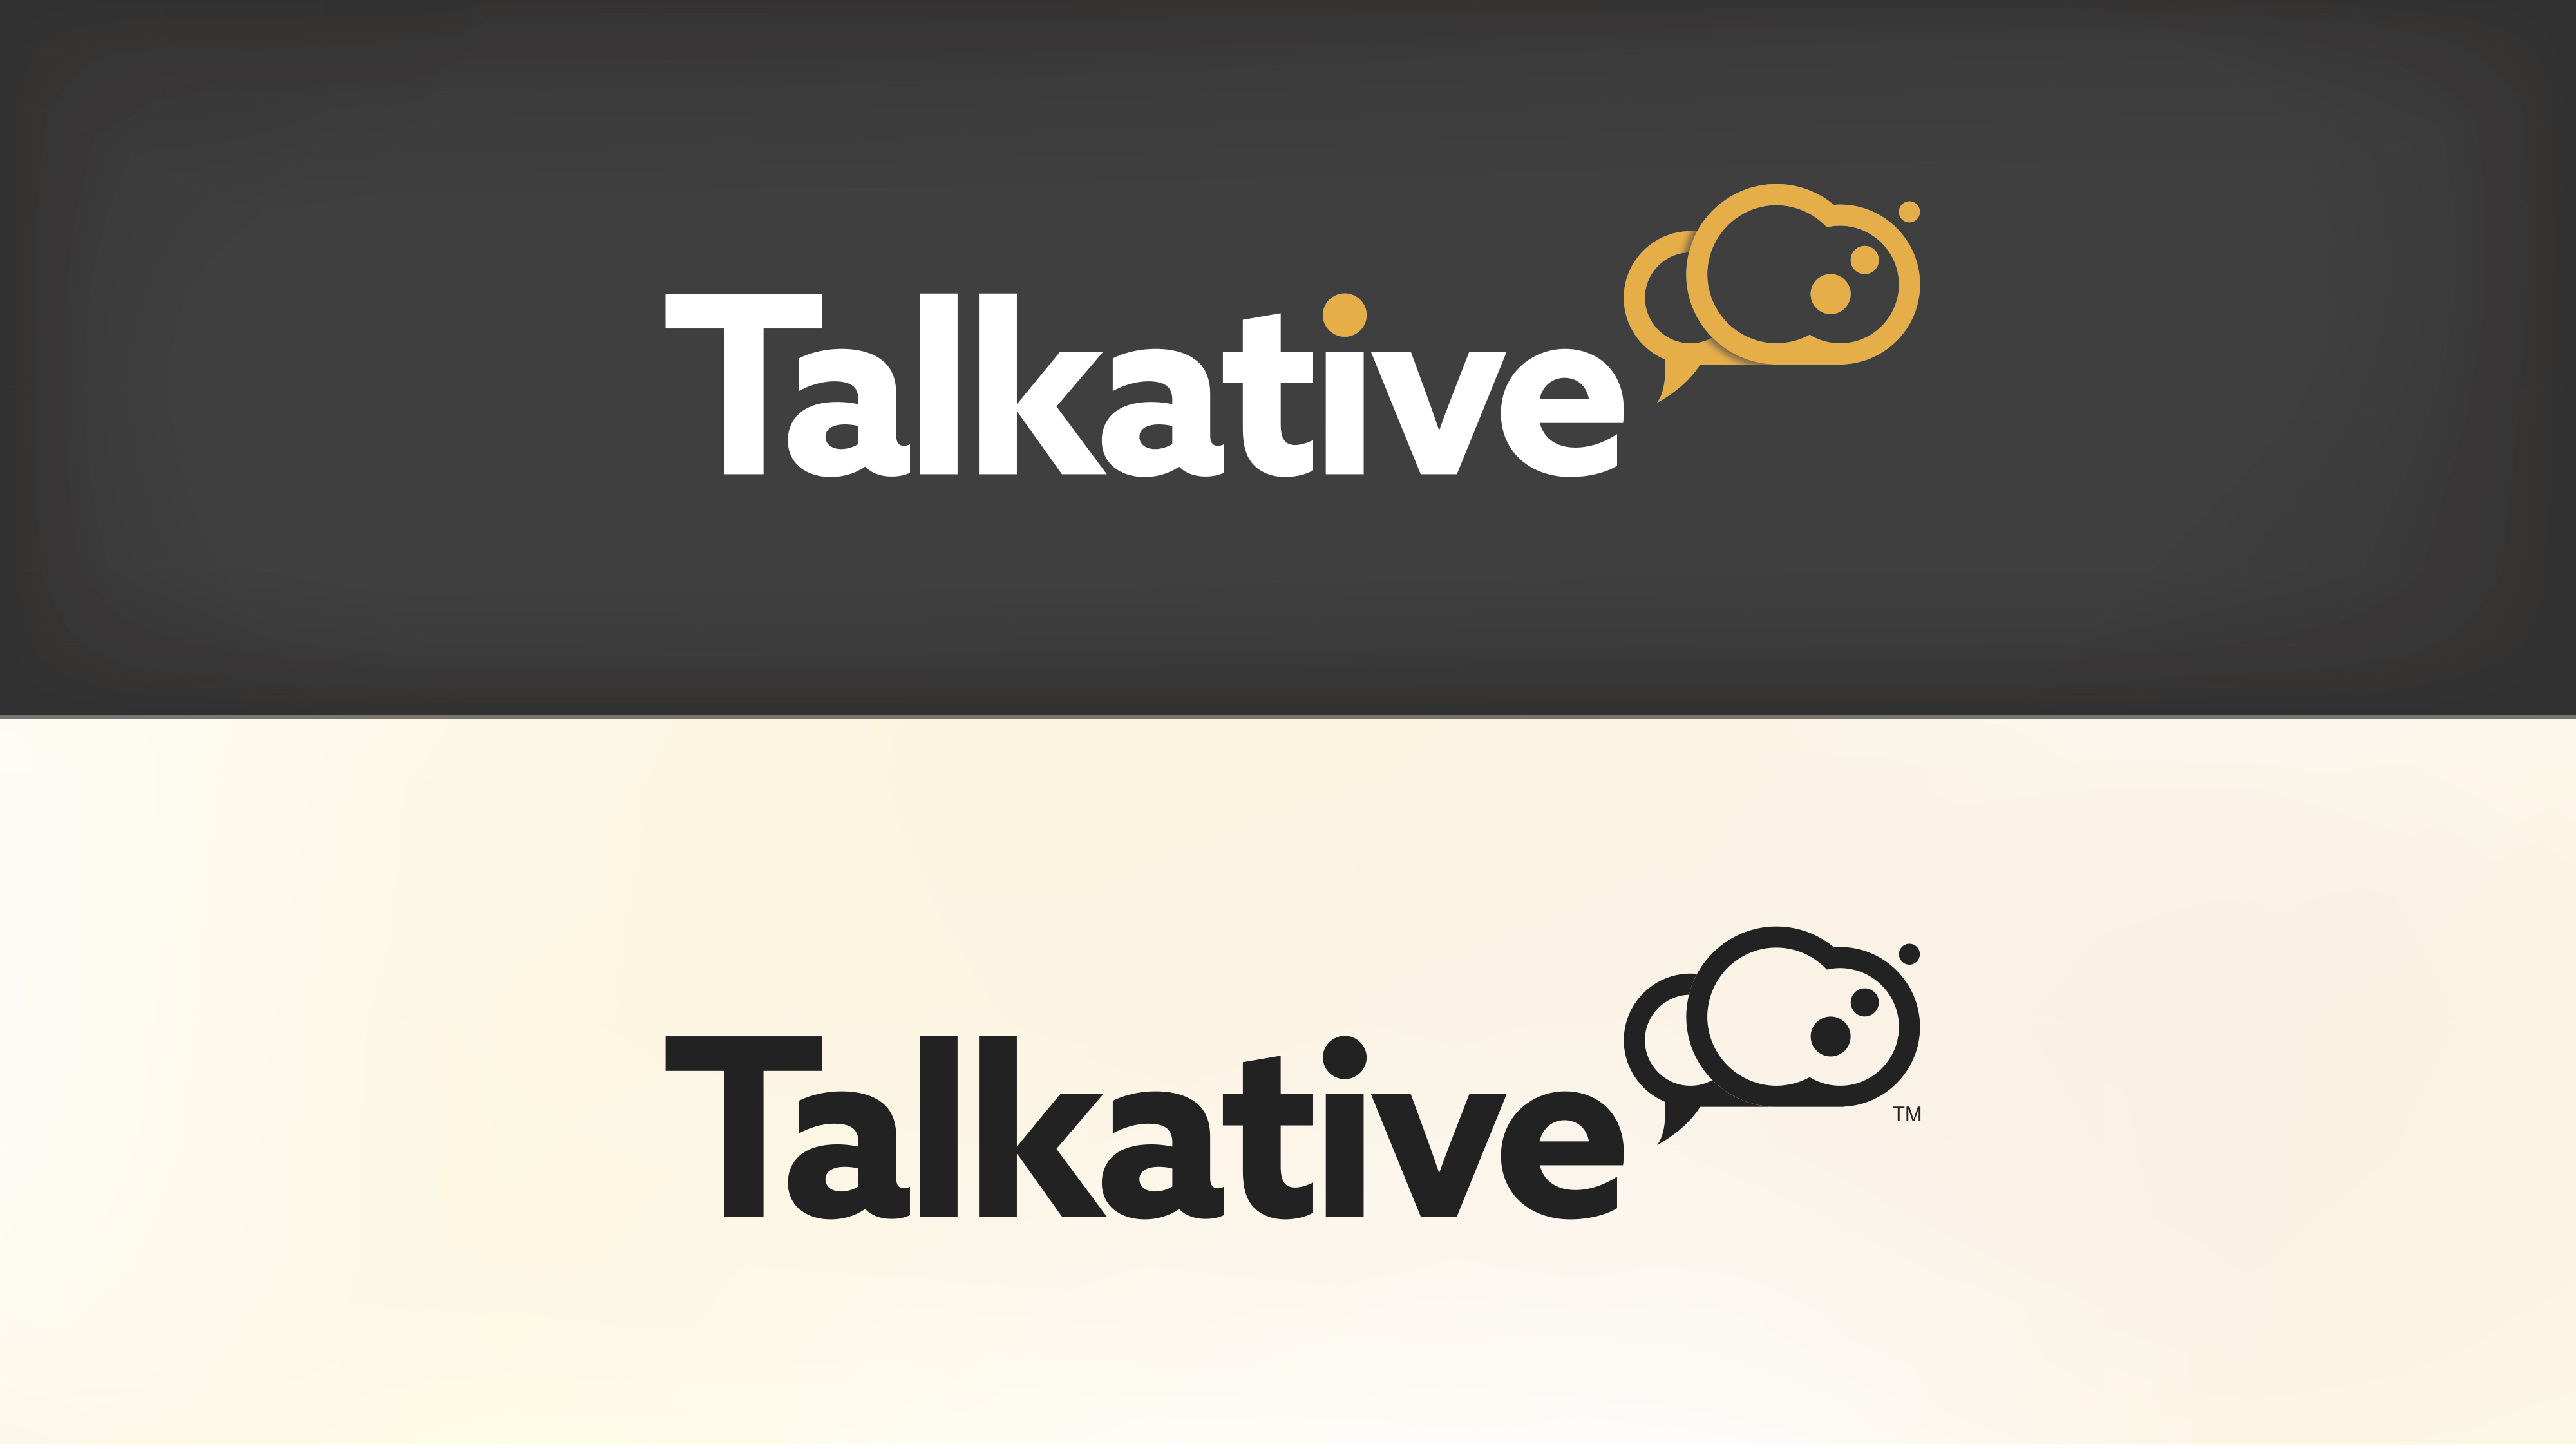 Talkative logo on different coloured backgrounds